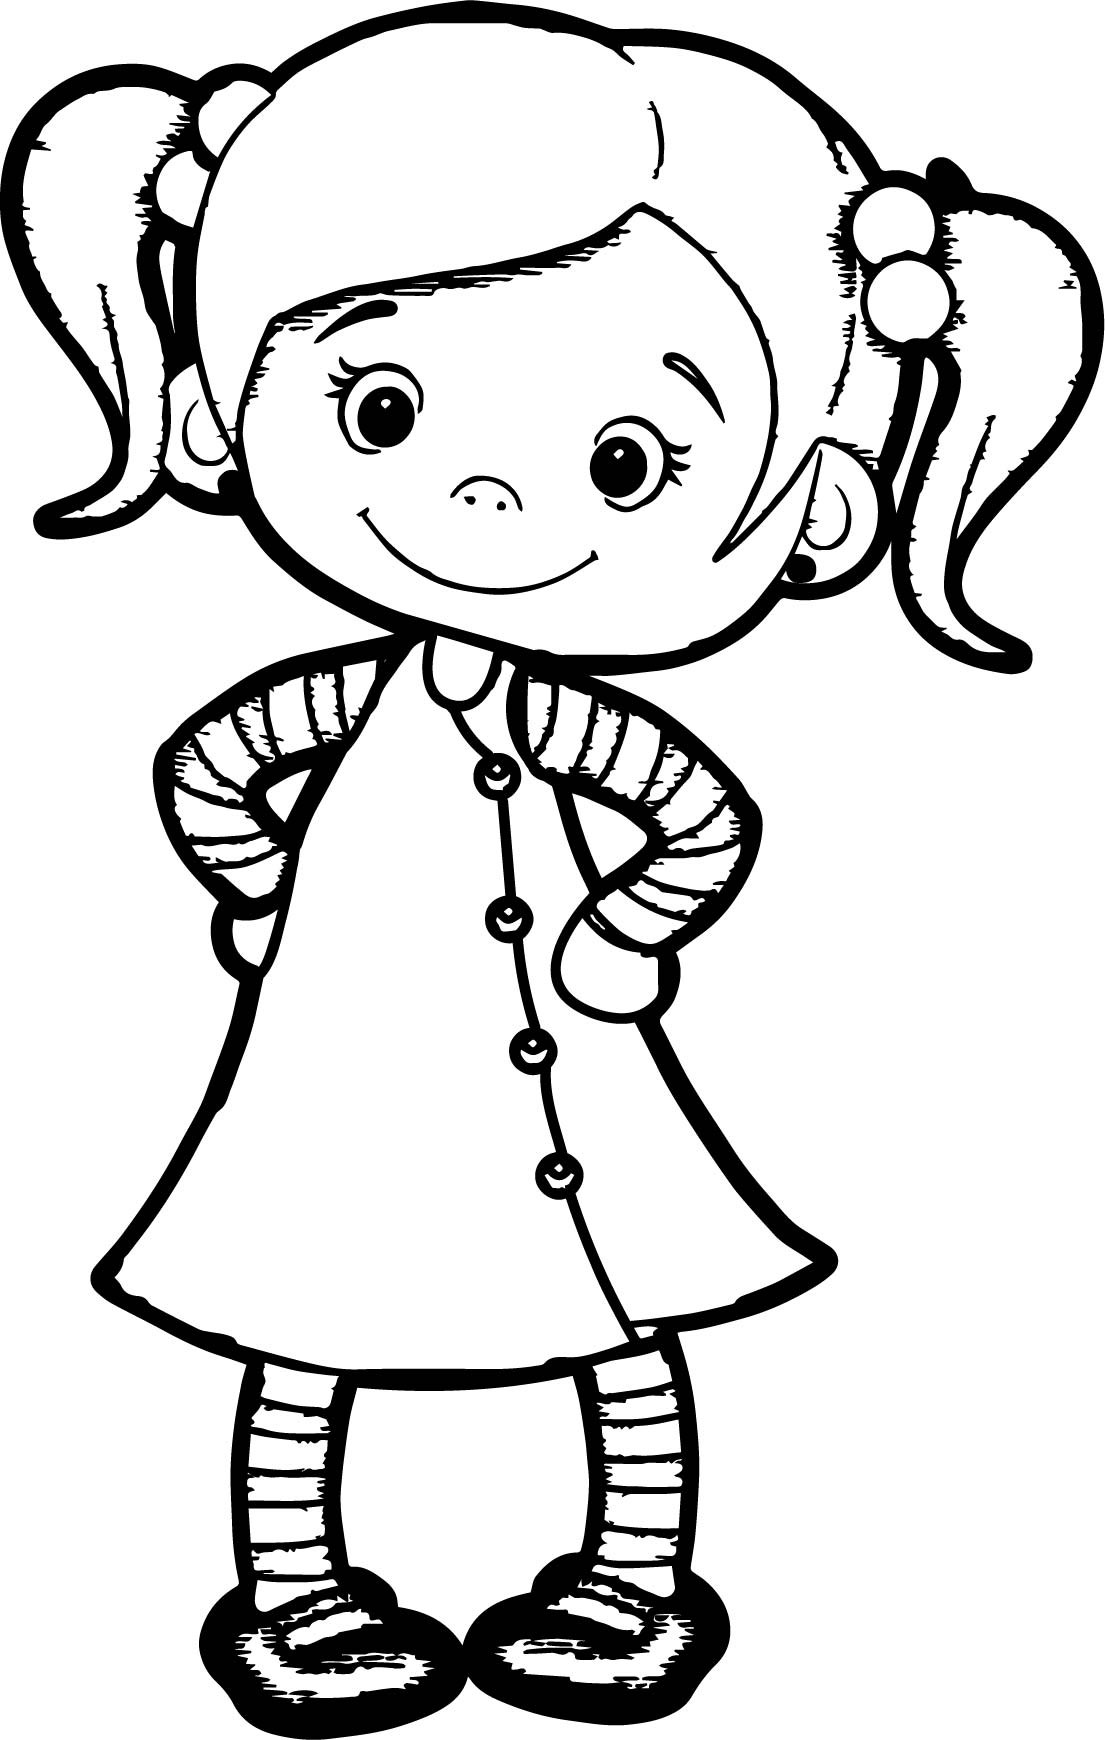 Leprechaun Face Coloring Pages At Getdrawings